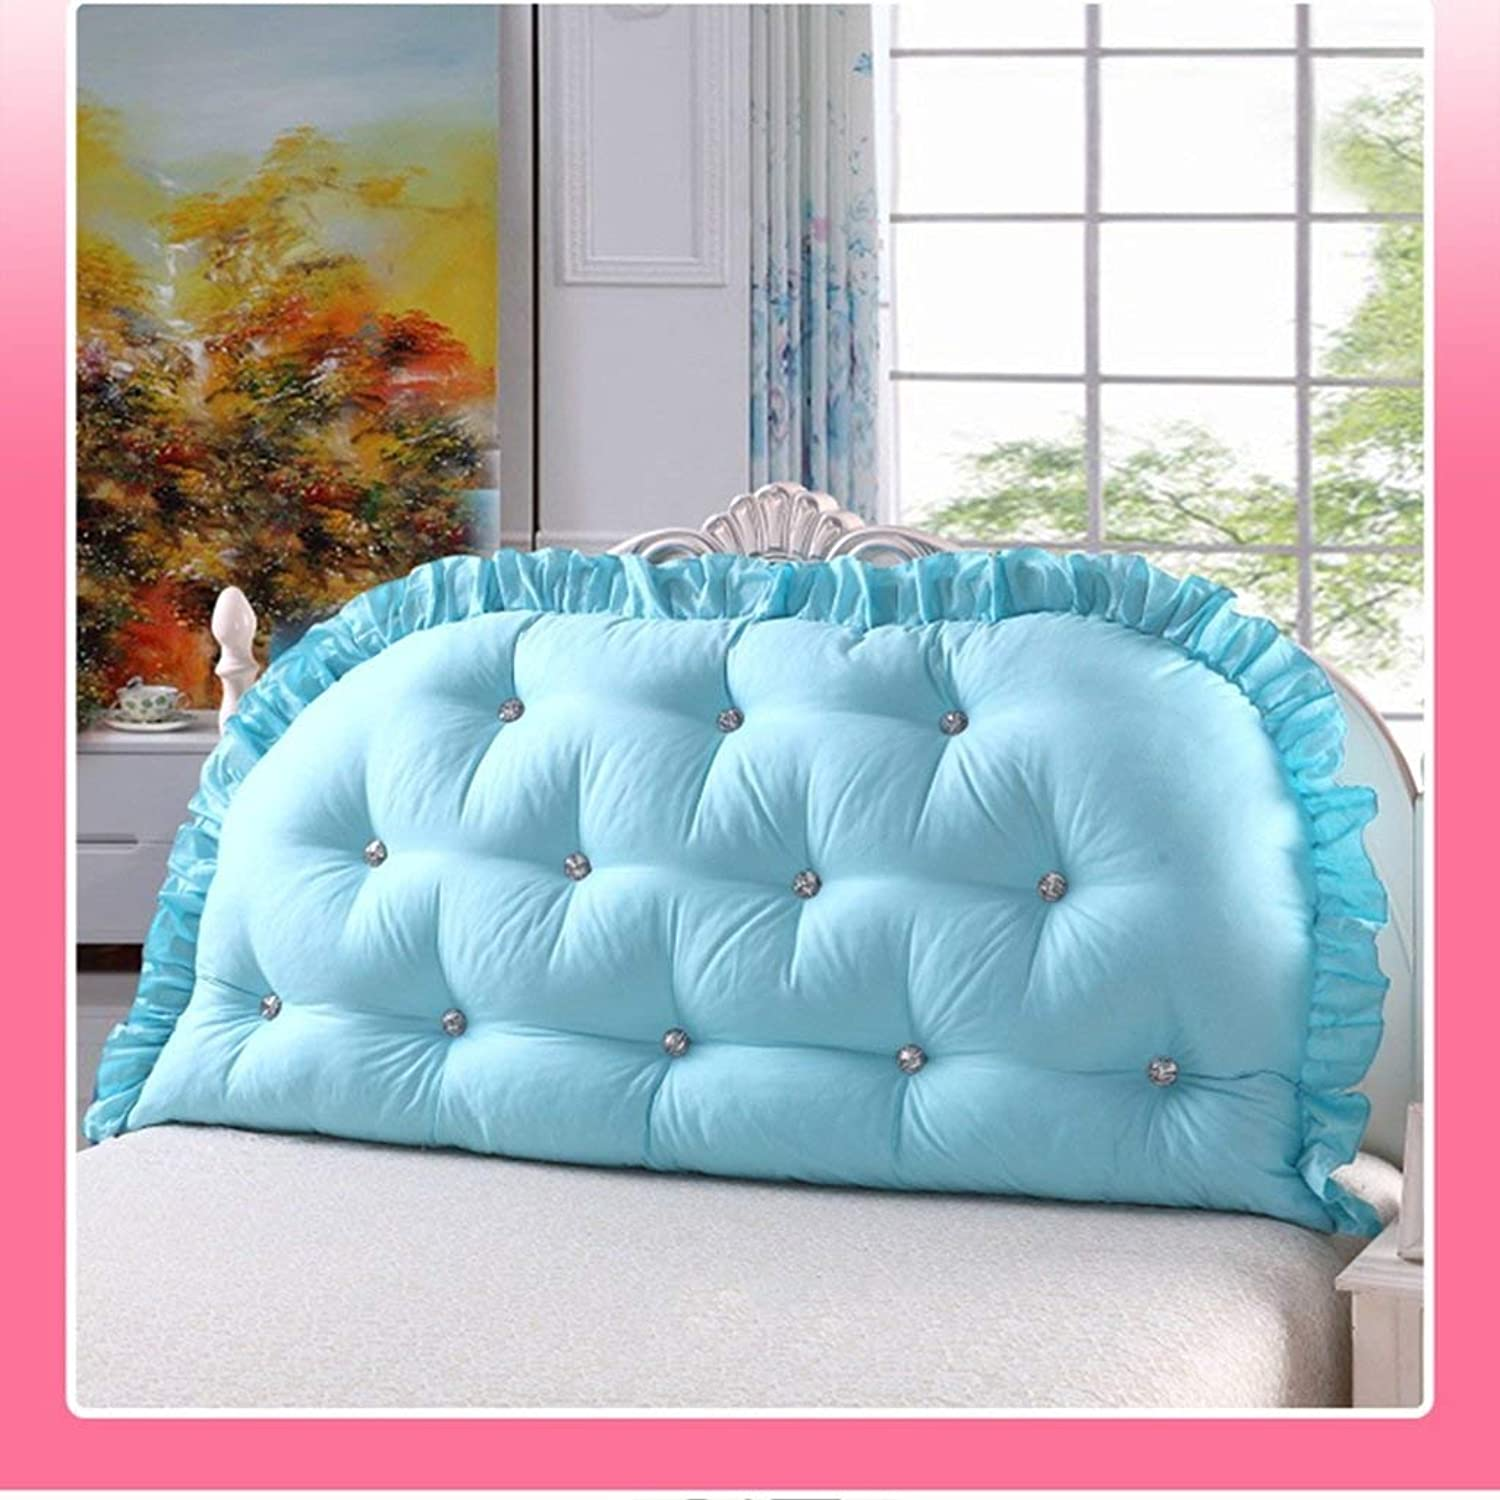 Bed Head Cushion Sofa Big Cotton Double Long Pillow Pillow Bedside Big Backrest Core Positioning Supports Reading Comfortable Headrests, QiXian